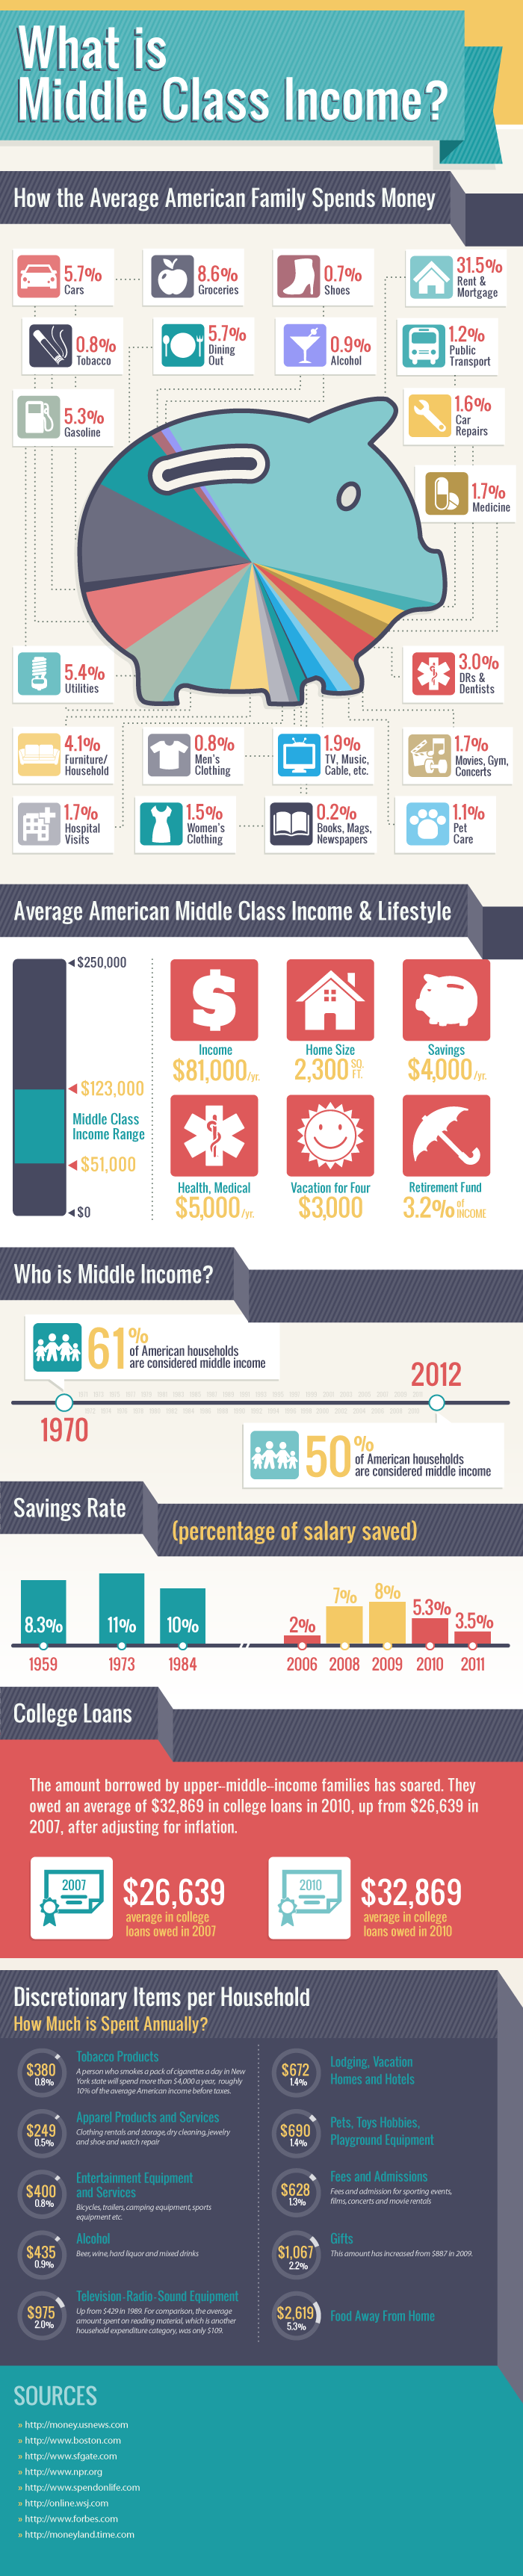 Average-Middle-Class-Income